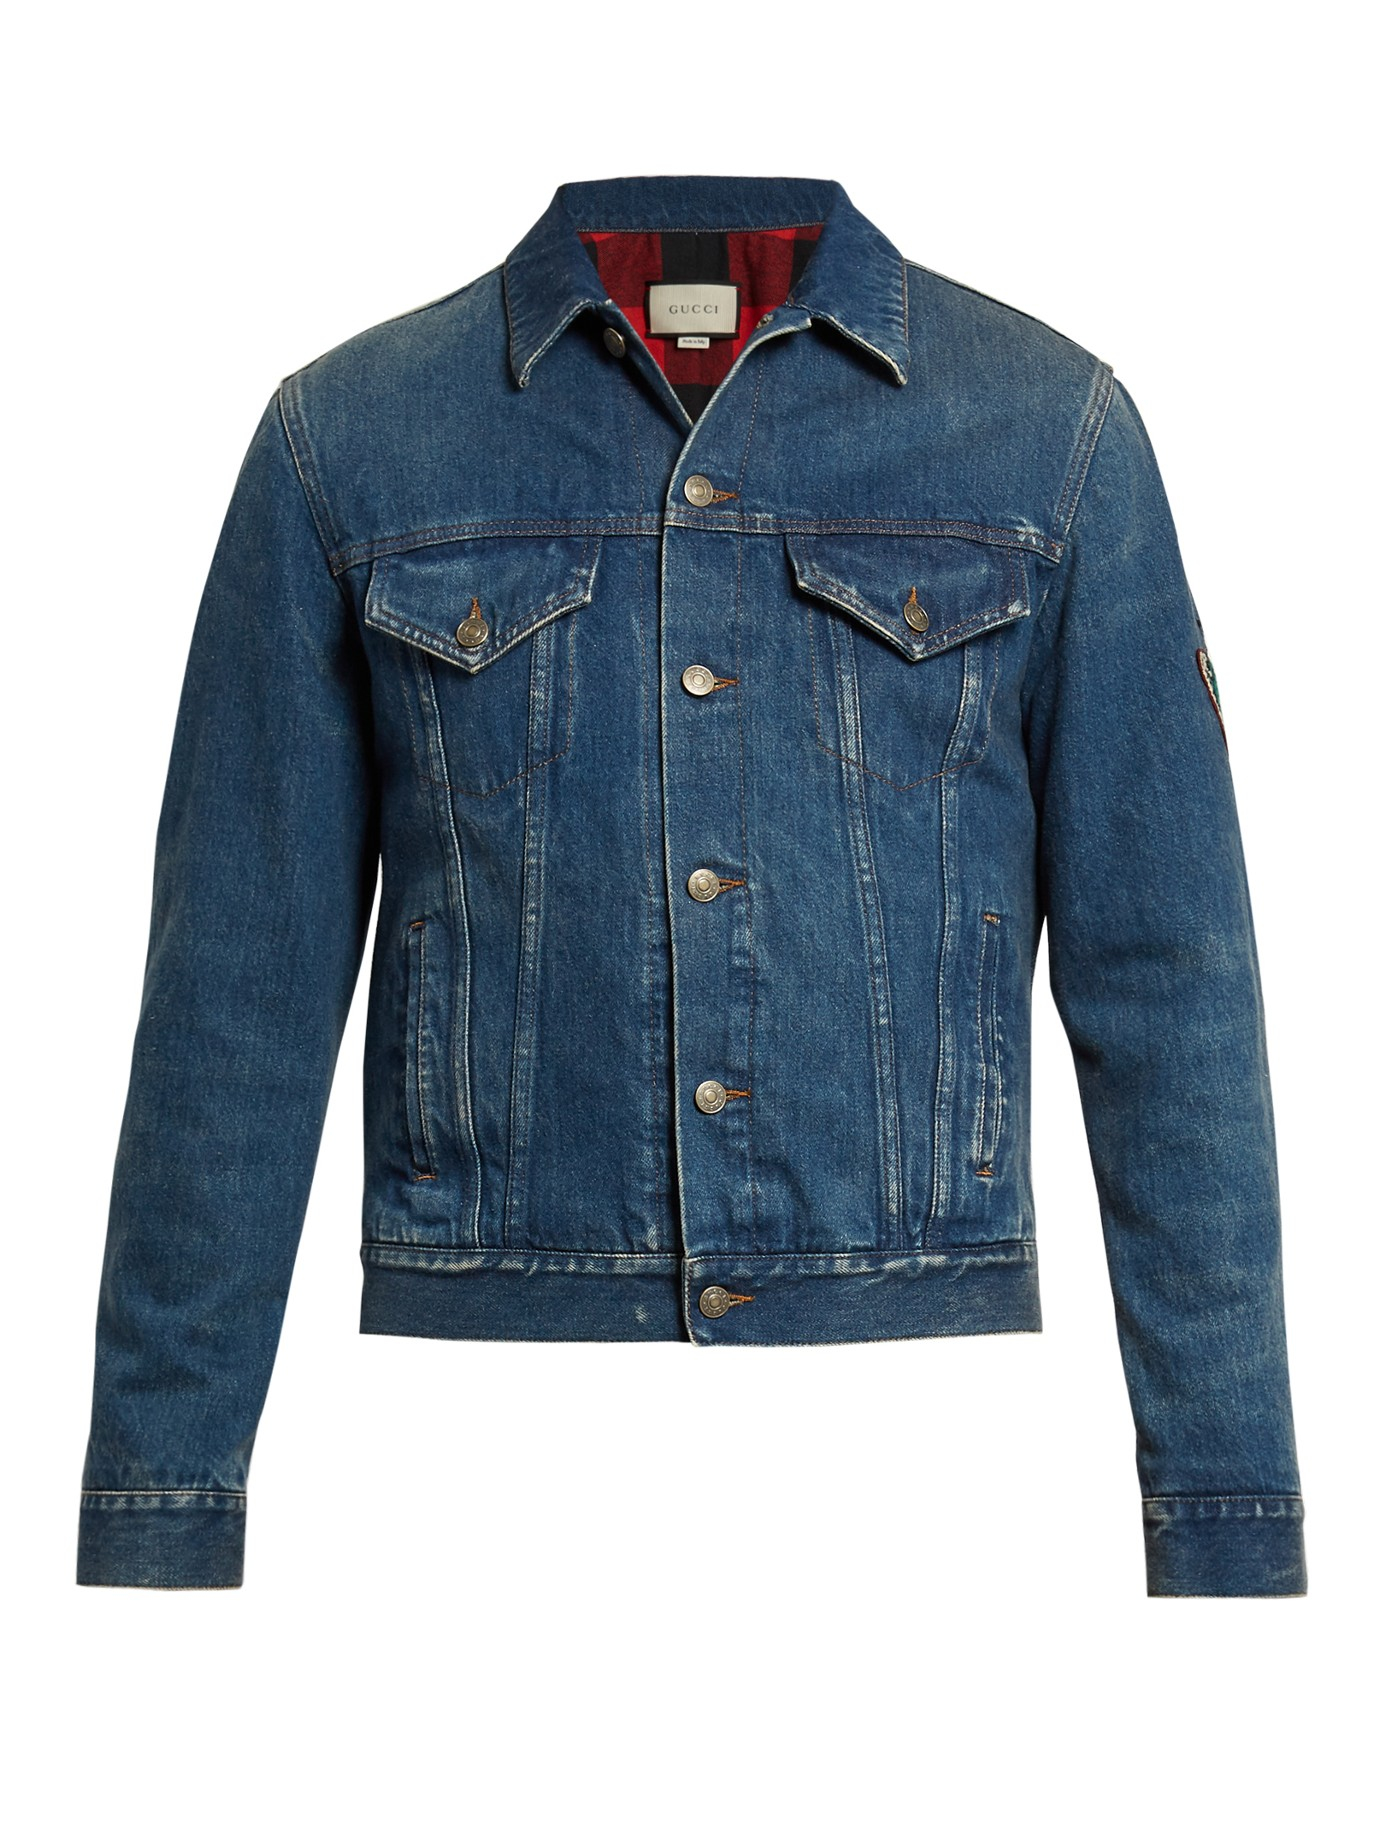 460650cf7 Gucci Tiger-embroidered Denim Jacket in Blue for Men - Lyst